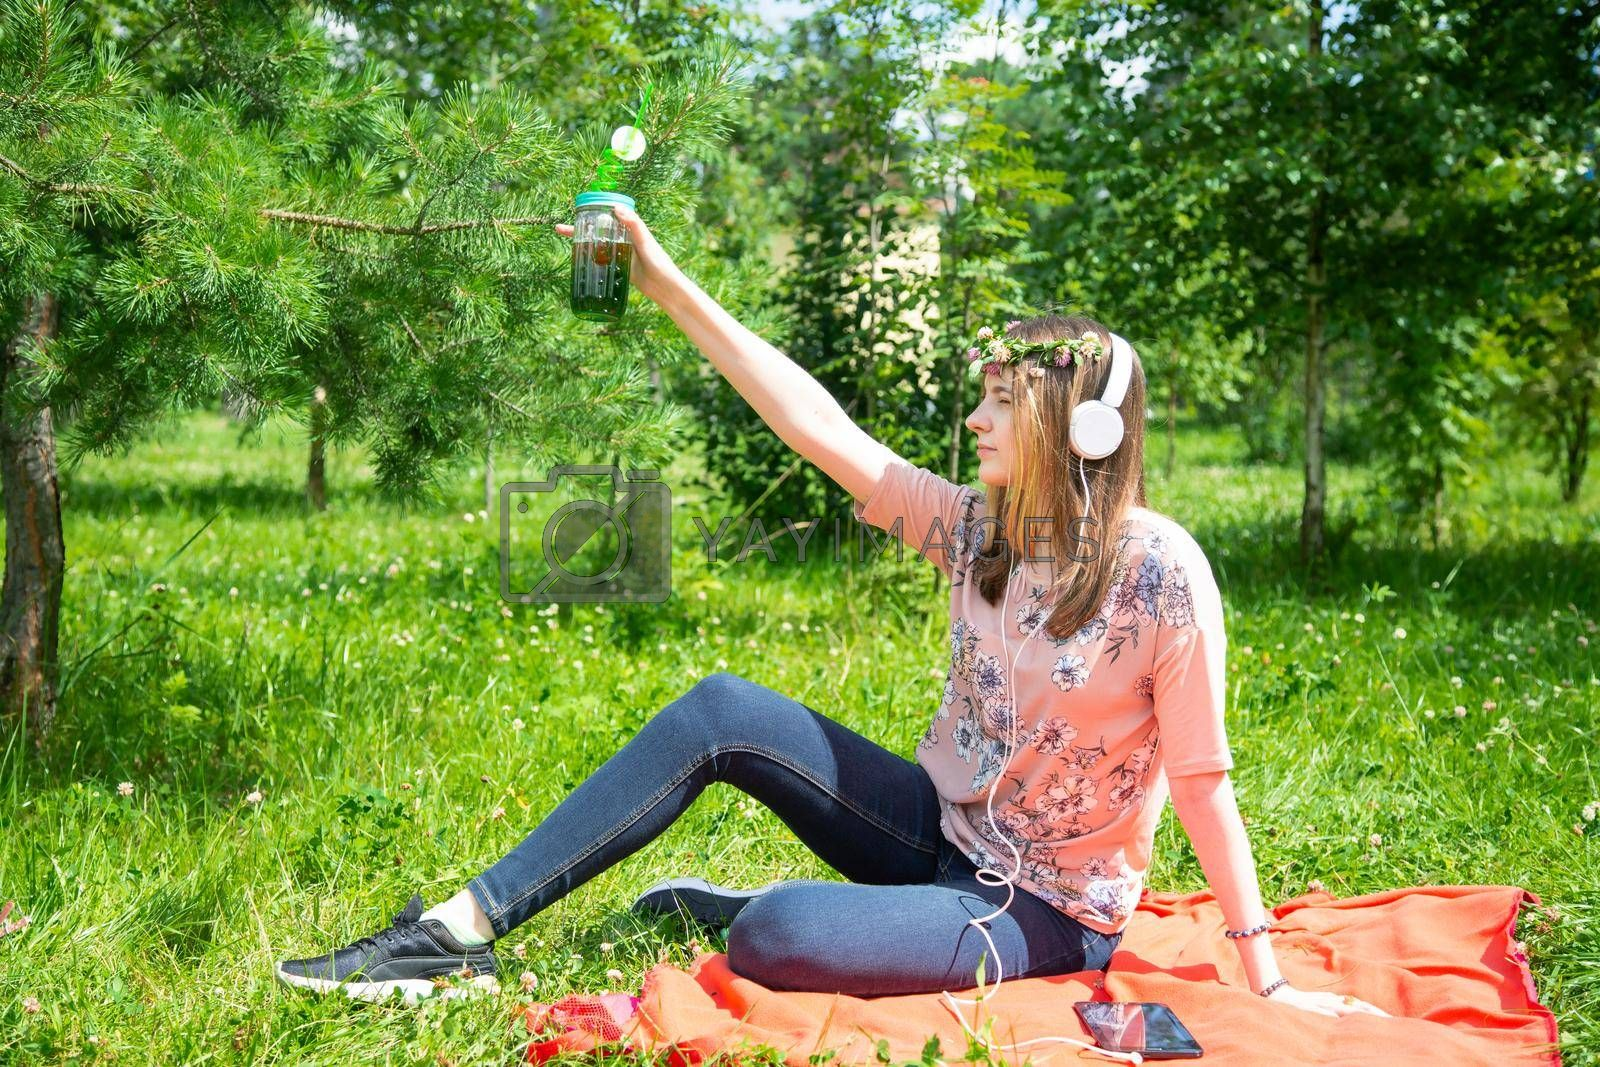 A young girl of 20 years old Caucasian appearance makes a selfie on her mobile phone while sitting on the lawn in the park on a summer day. The girl is dressed in a floral T-shirt and jeans